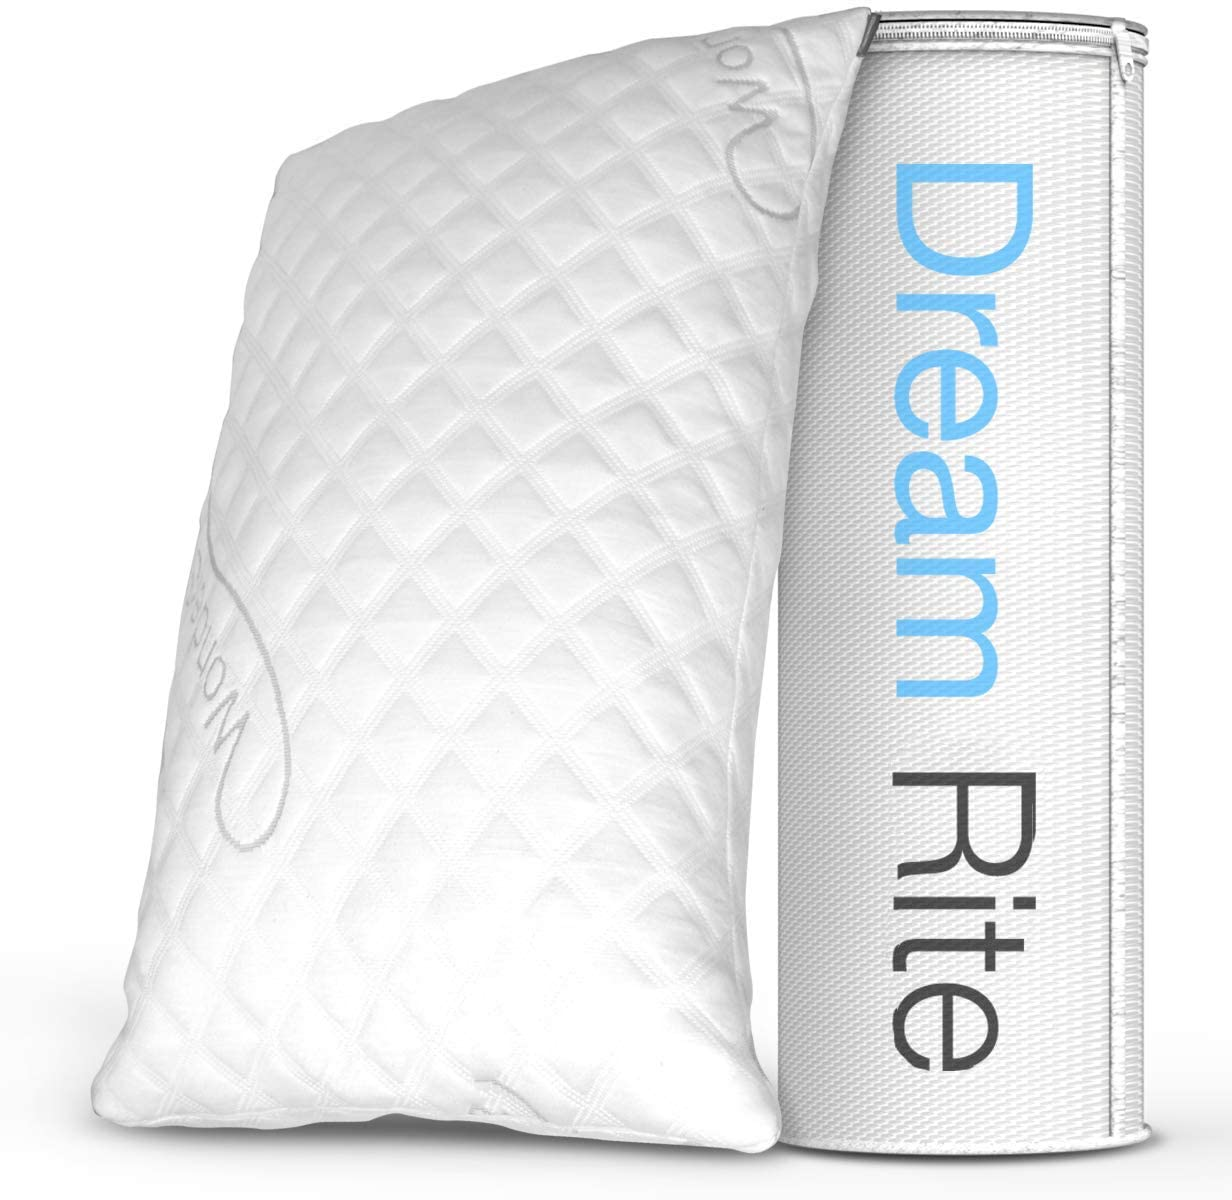 WonderSleep Dream Rite Shredded Hypoallergenic Memory Foam Pillow Series Luxury Adjustable Loft Home Pillow Hotel Collection Grade Washable Removable Cooling Bamboo Derived Rayon Cover- Queen 1 Pack: Home & Kitchen